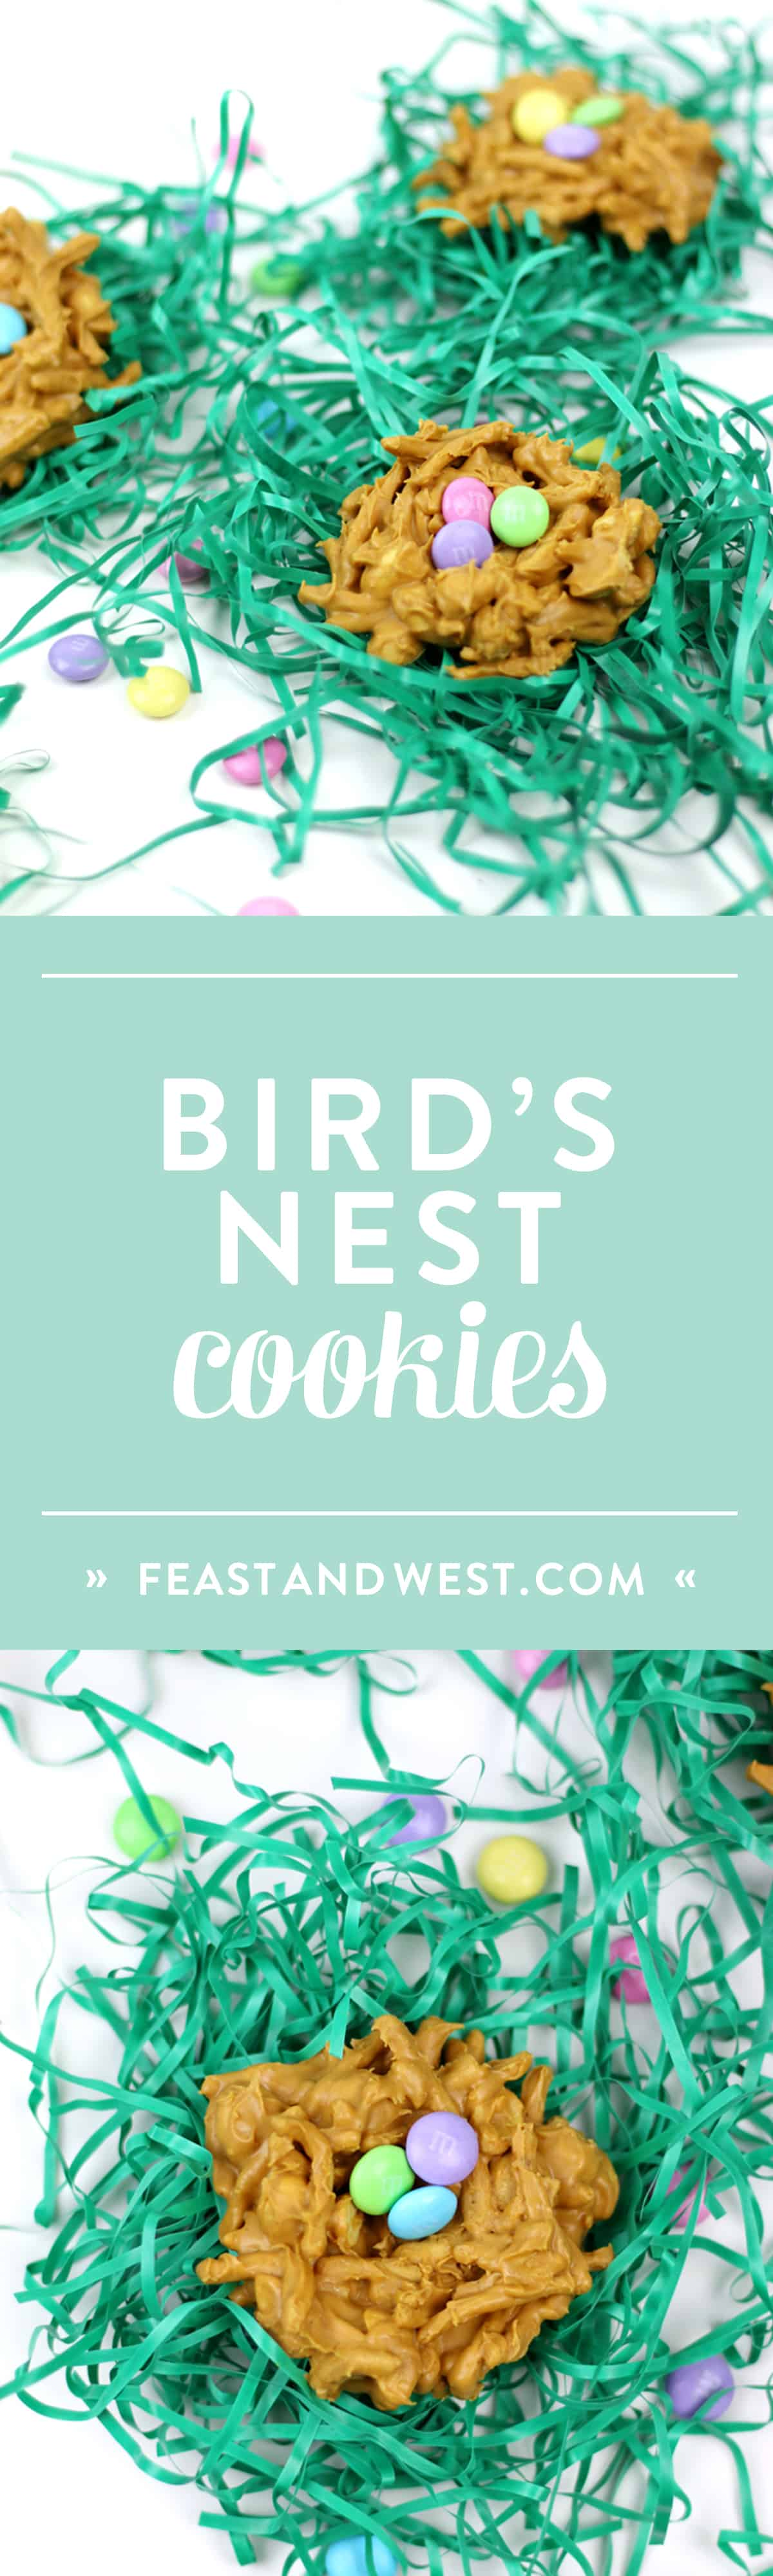 "Whimsical and colorful, these Peanut Butter Butterscotch Nest Cookies are an adorable seasonal treat. Made with M&M'S® Milk Chocolate as the ""eggs,"" serve these at any spring gathering or gift them in an Easter basket! (via feastandwest.com)"